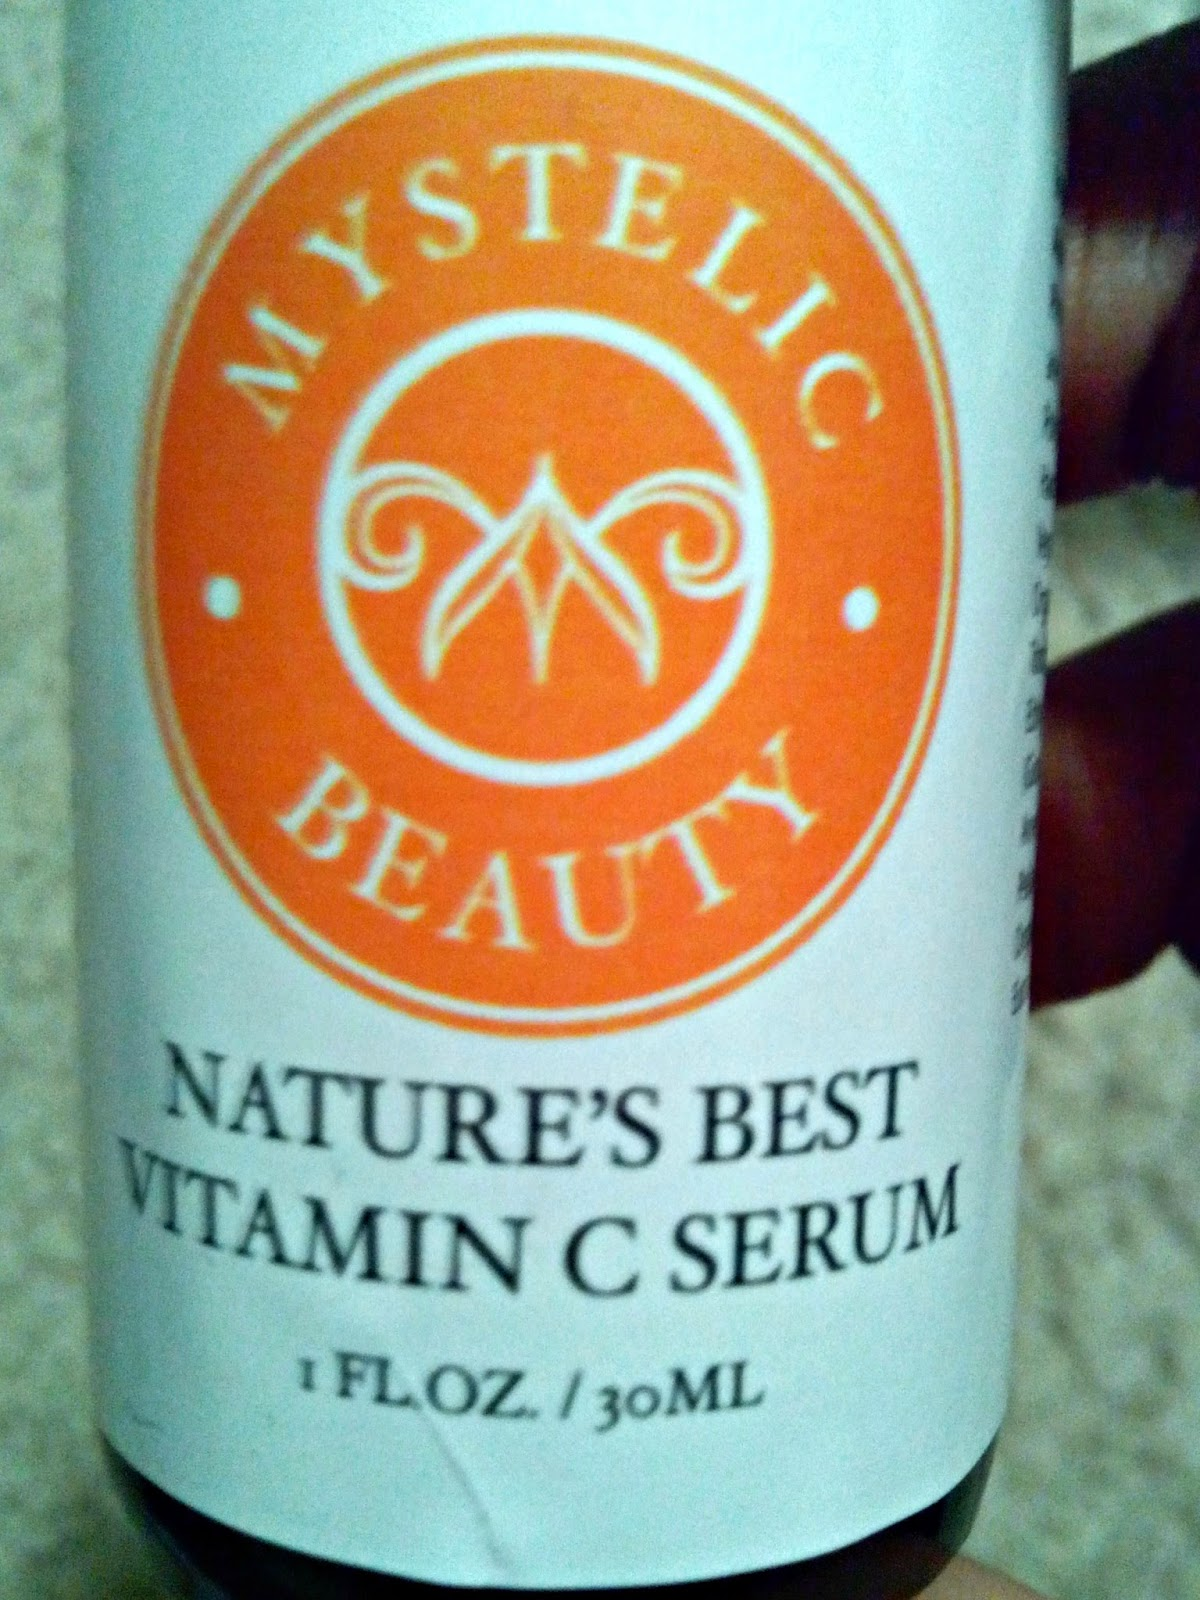 For Face, Eyes, Acne, On The Market, vitamin C, vitamin E, Hyaluronic Acid, Reverse Skin Aging, reduce Wrinkles, Look and Feel Years Younger, Organic, 18 percent (%), Vitamin C Serum, Vidi, Obagi, Powder, Cream, facial serums.